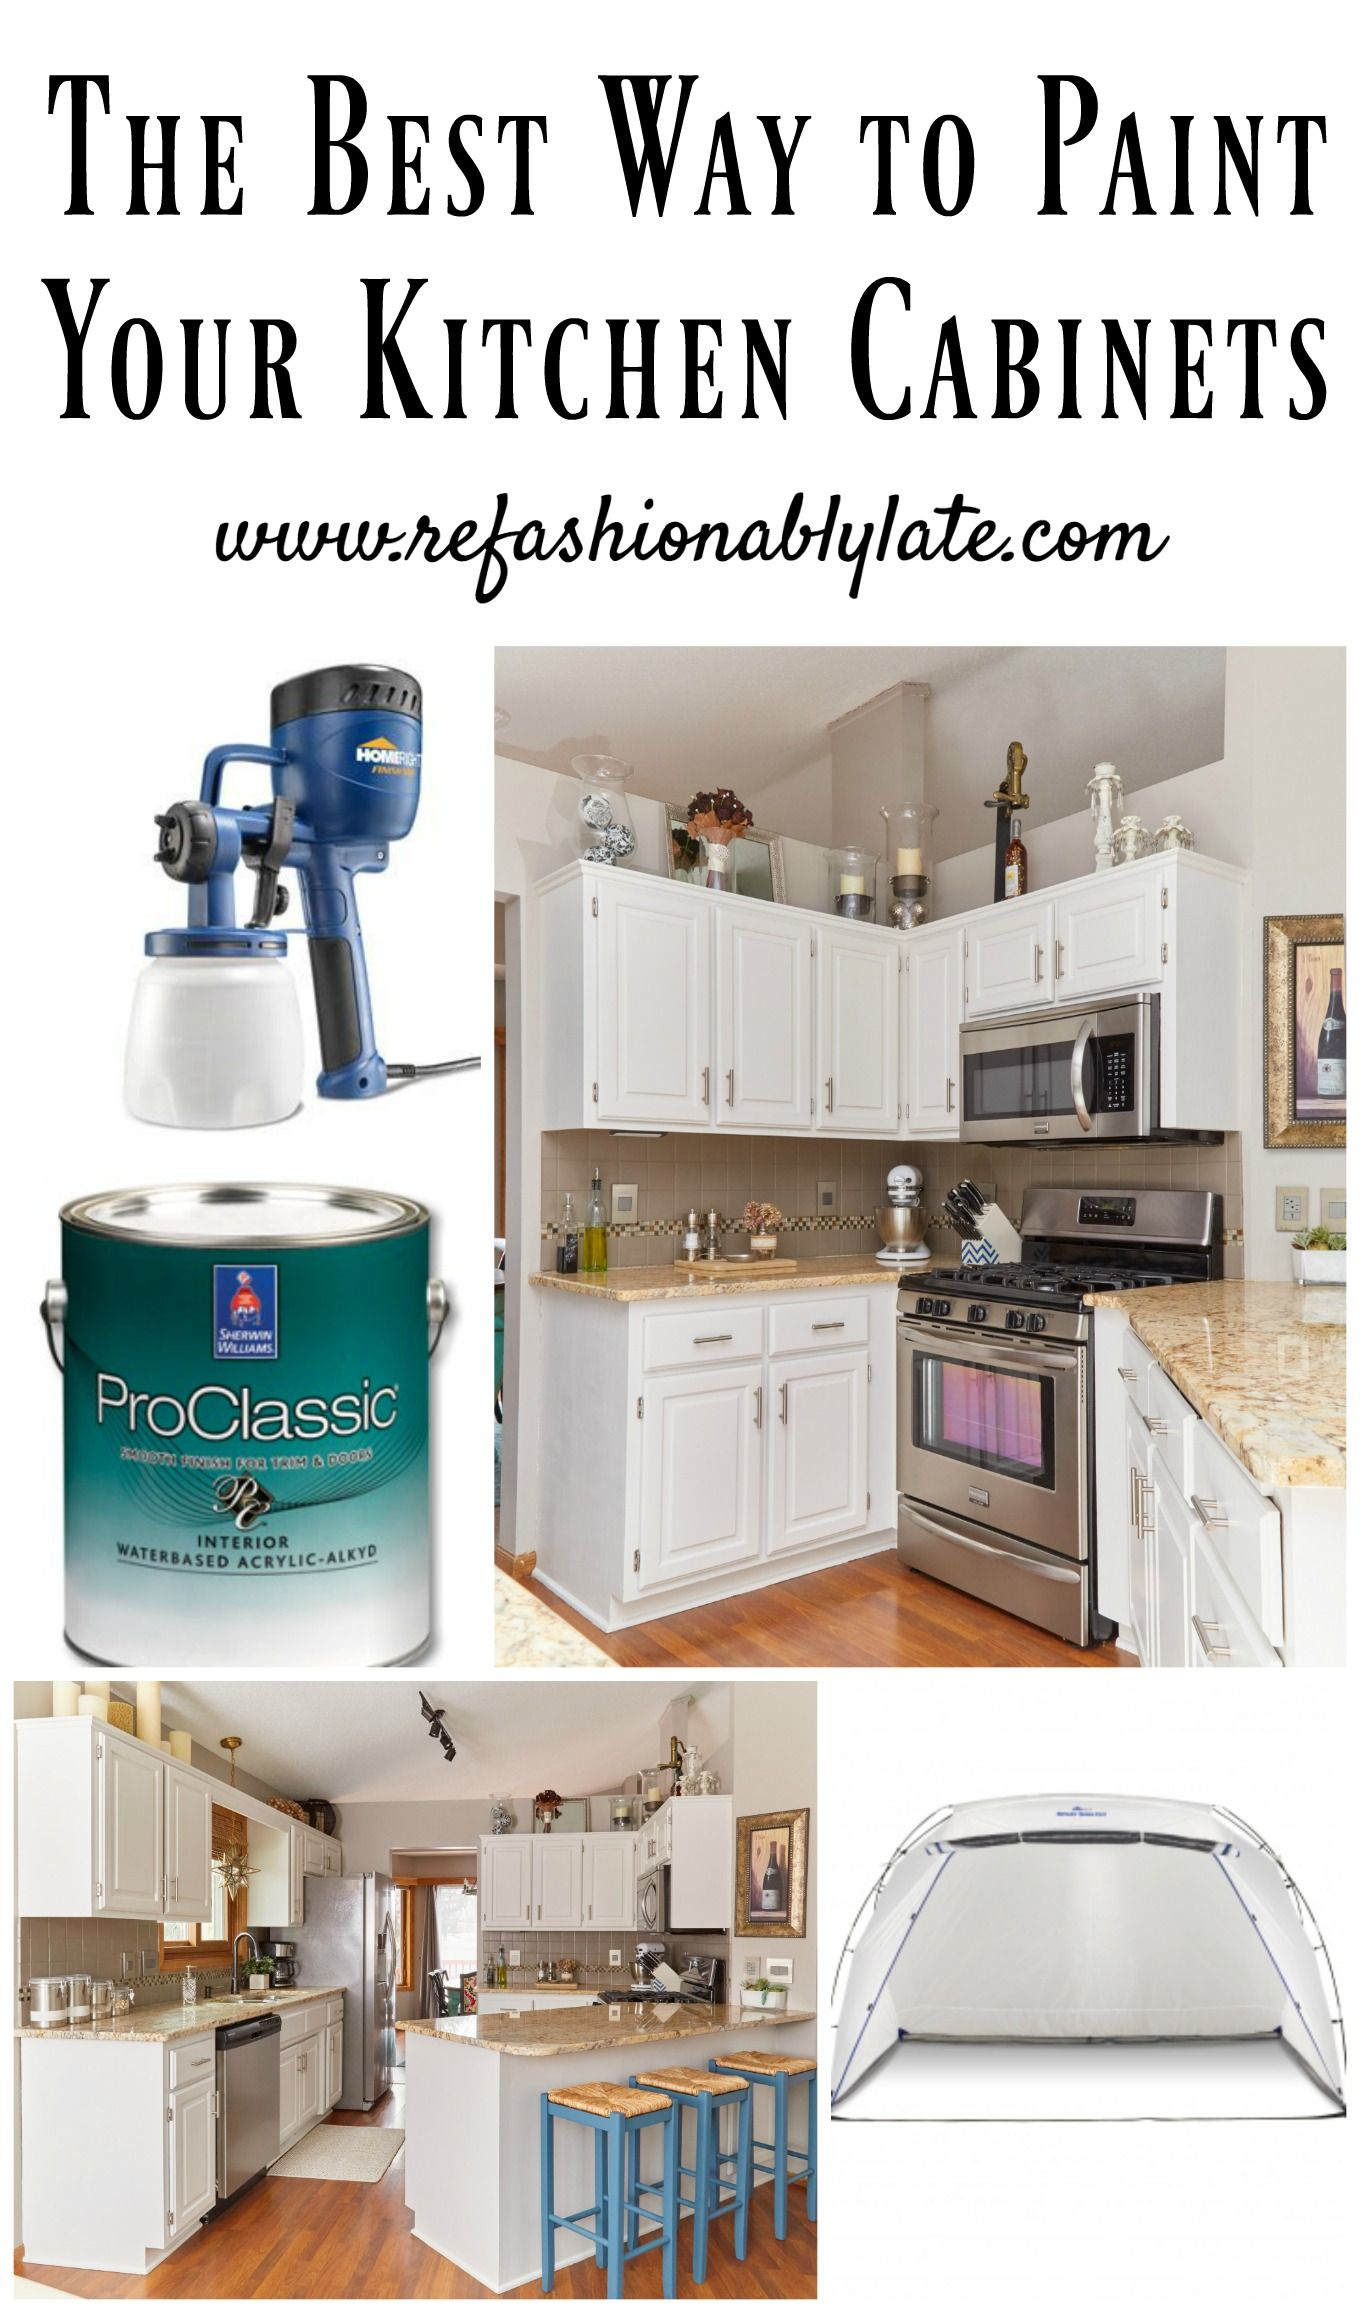 The Best Way To Paint Your Kitchen Cabinets Refashionably Late Kitchen Diy Makeover Painting Kitchen Cabinets Kitchen Paint